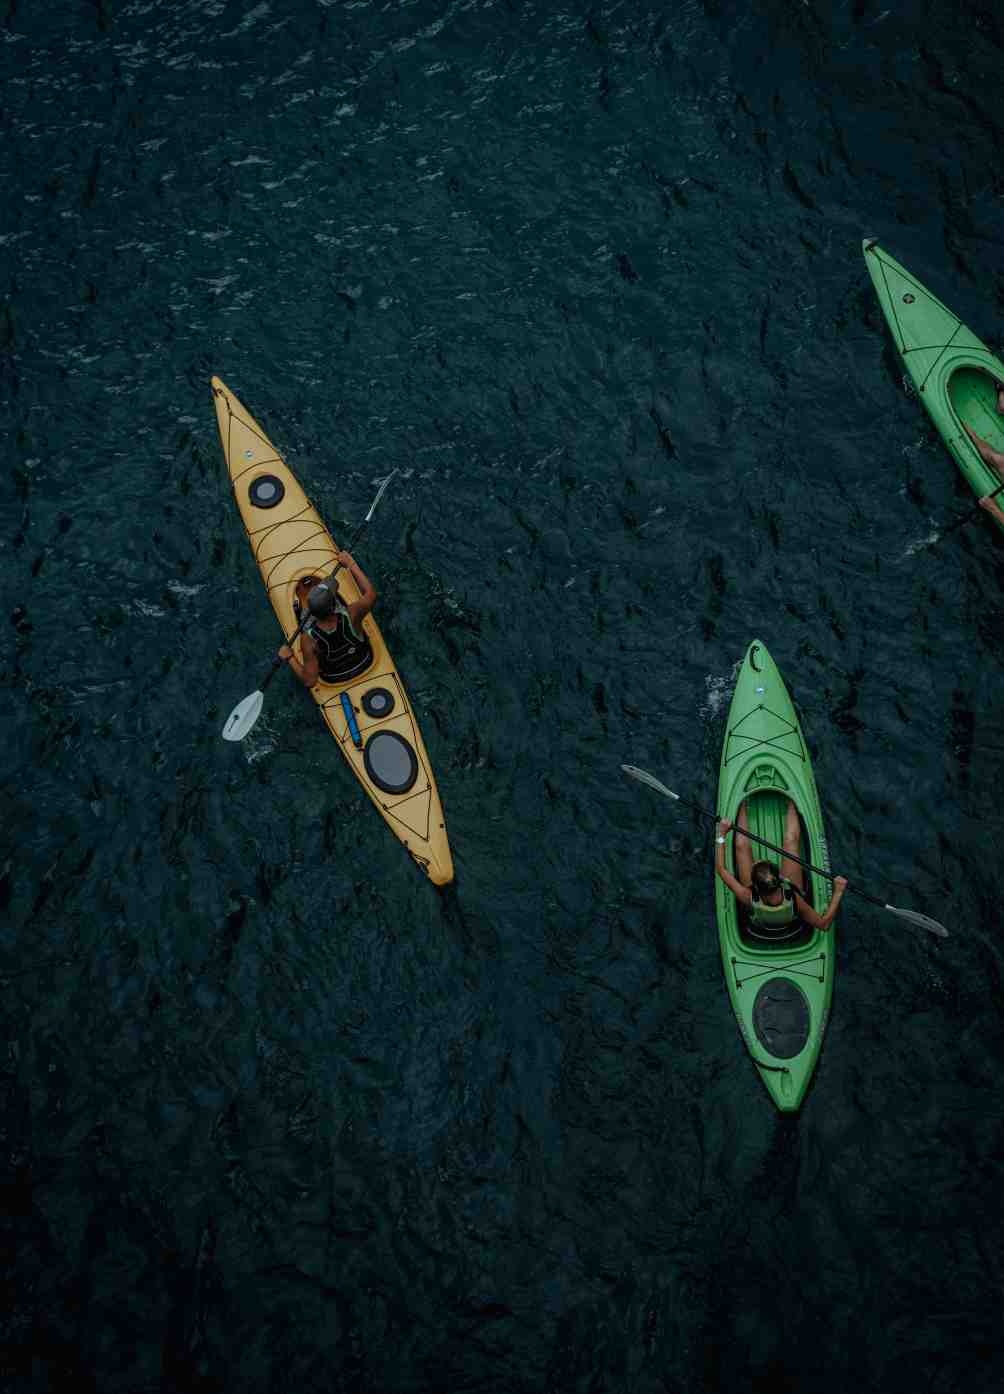 Three people in different types of kayaks